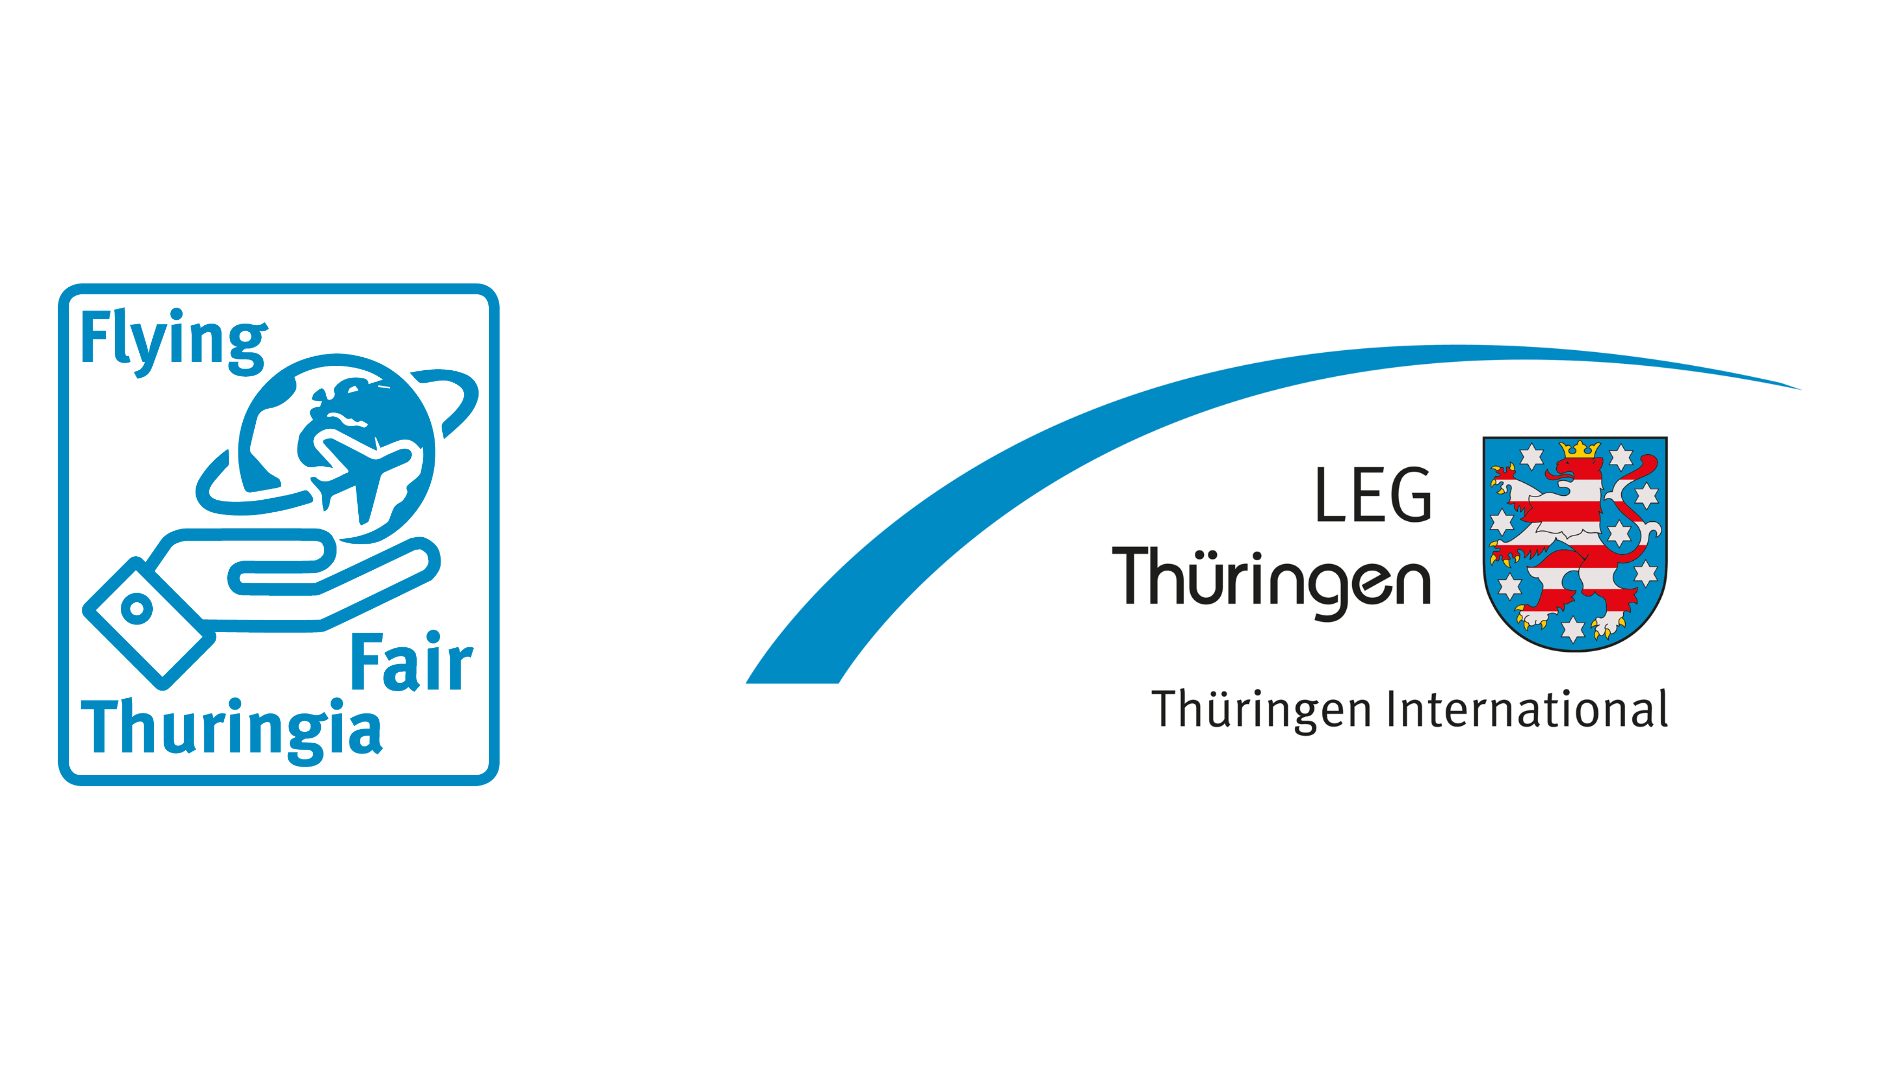 Flying Fair Thuringia